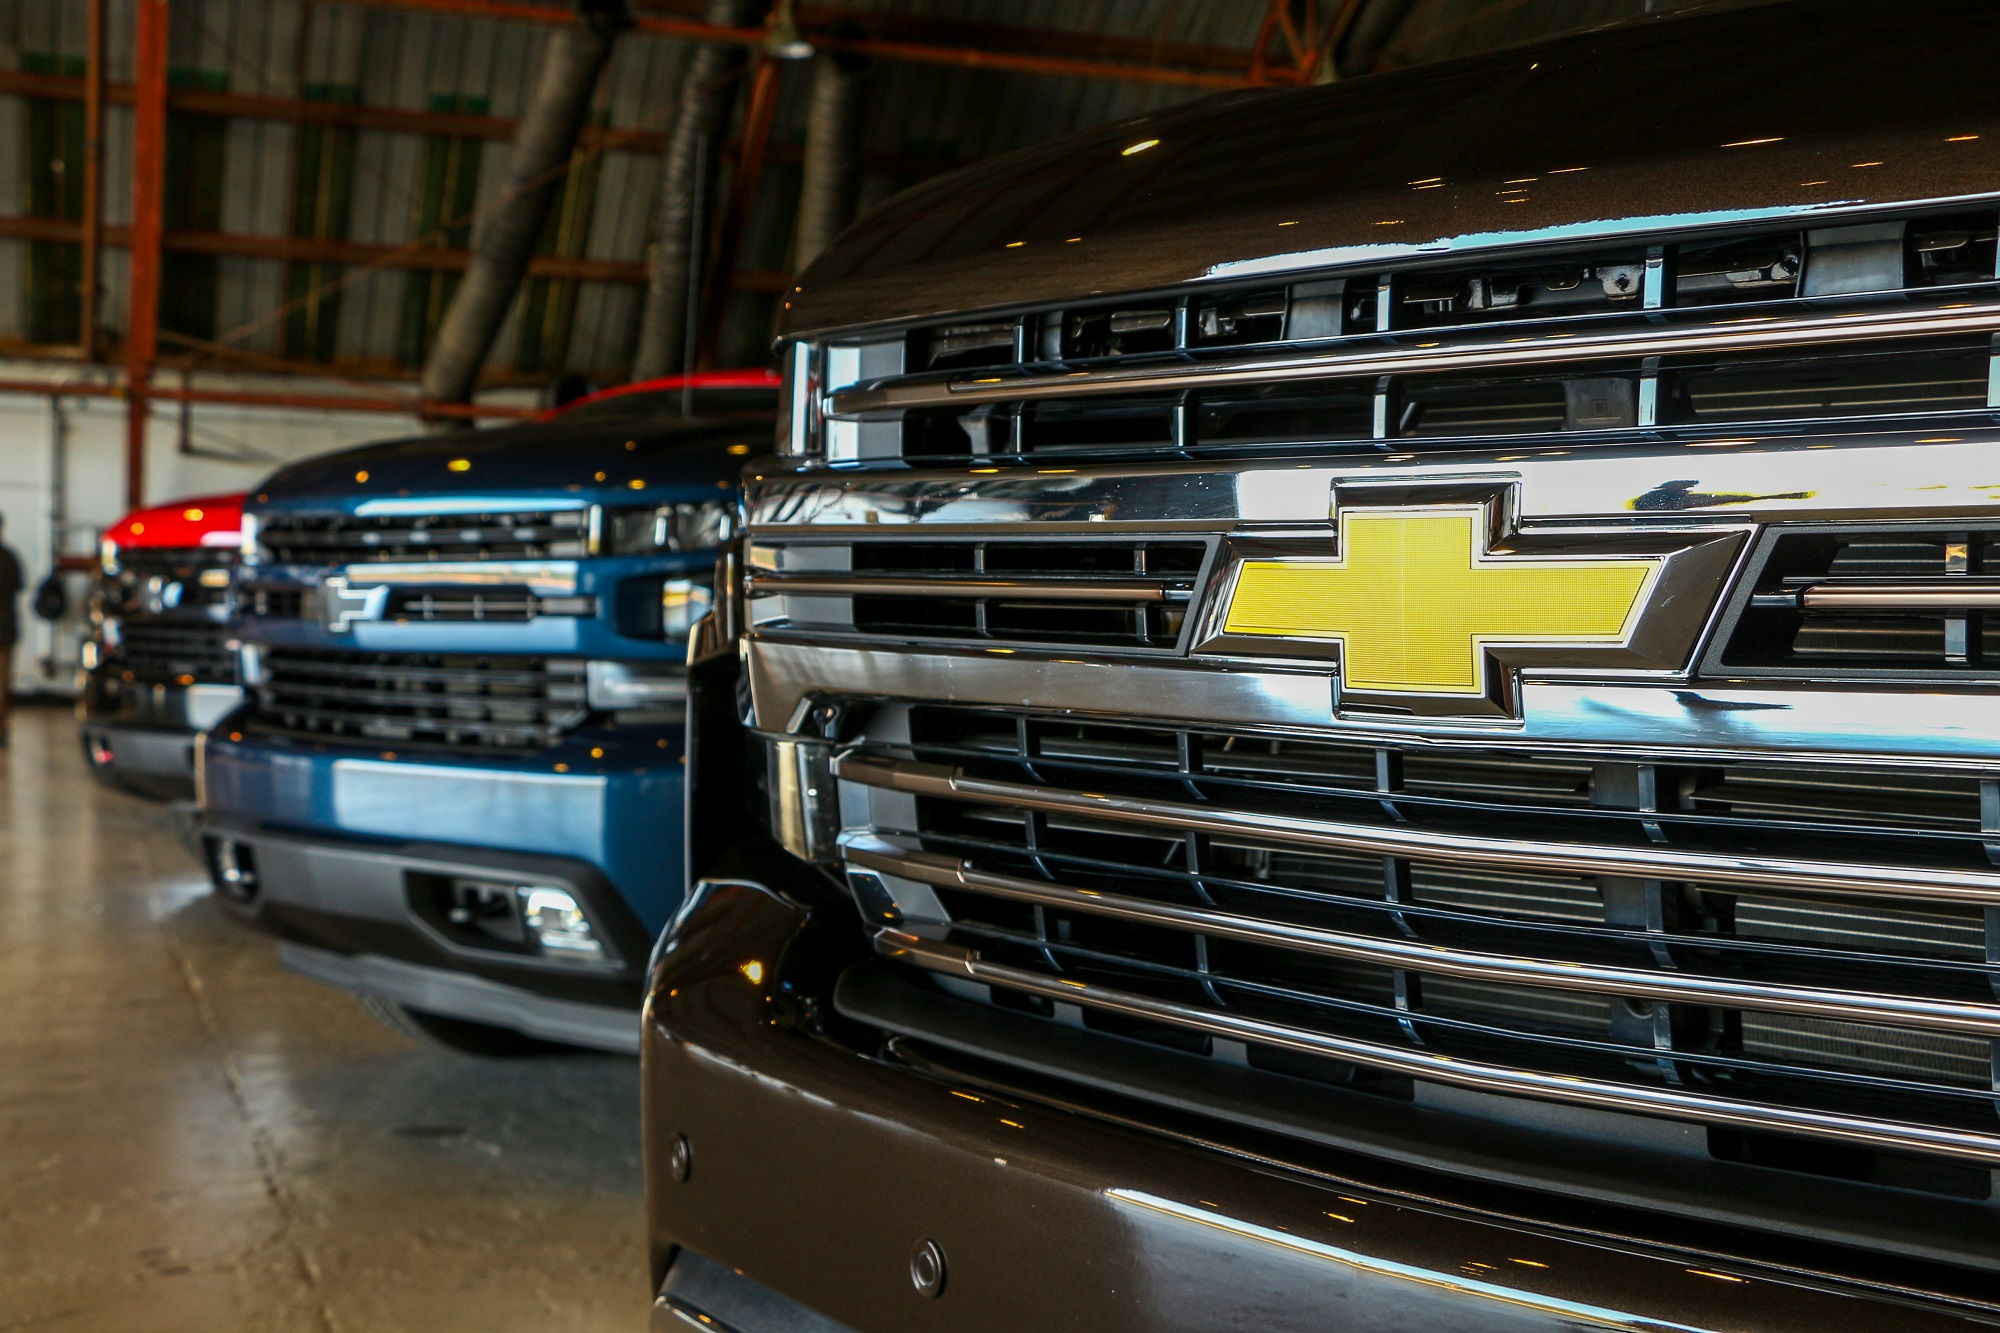 2019 Chevrolet Silverado 1500 Tow Towing Test Review High Country Trail Boss 6.2 5.3 V8 Truck LS1tech.com Jake Stumph